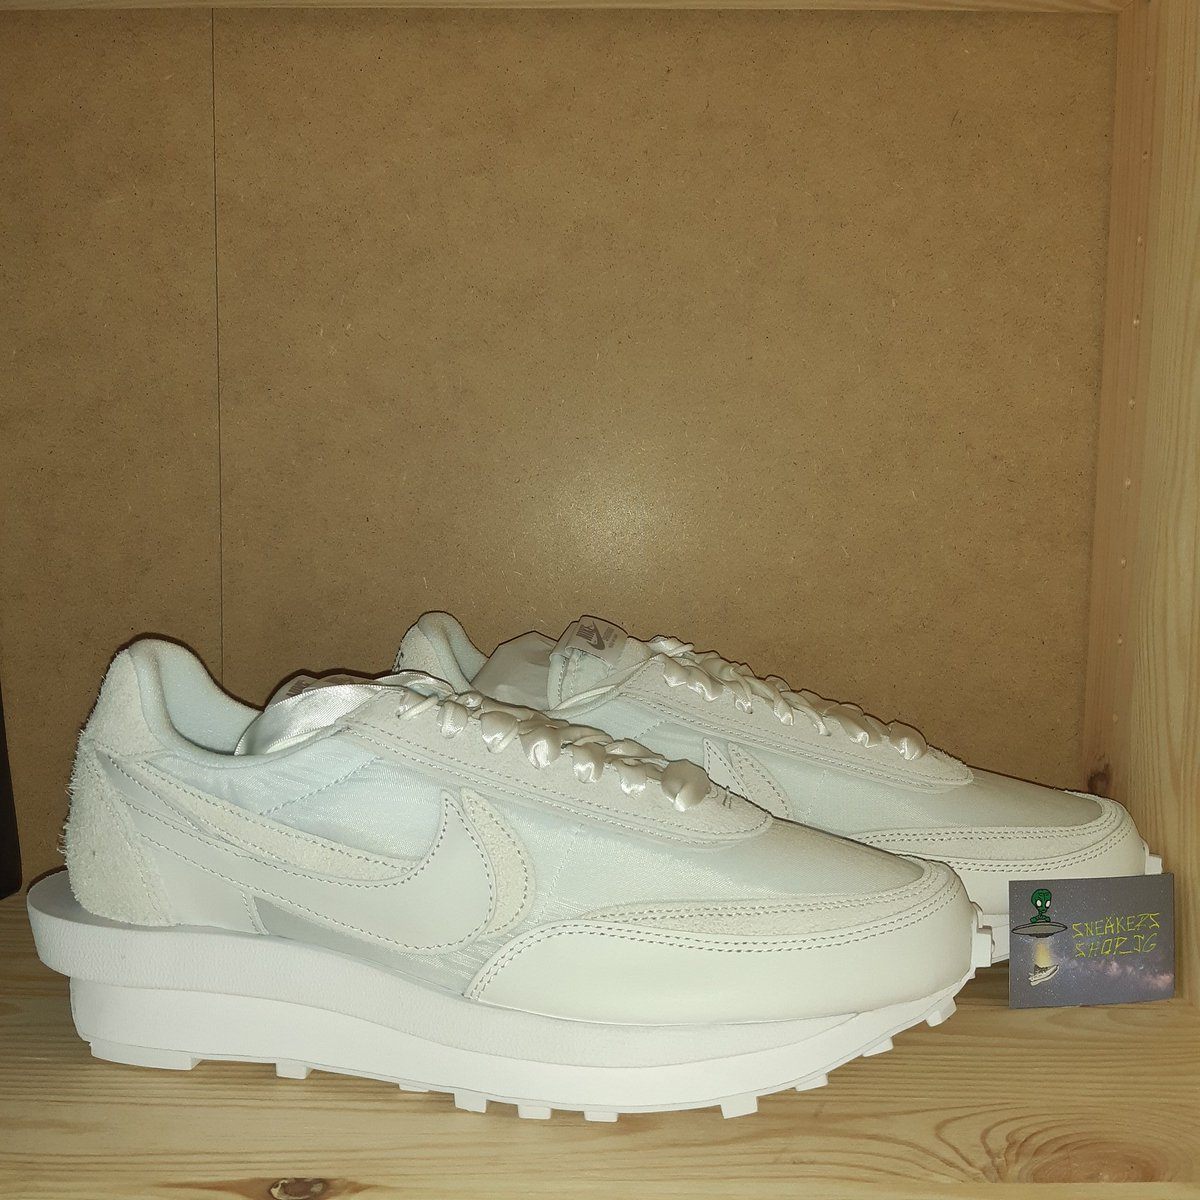 WTS #Nikesacai LD WAFFLE WHITE NYLON  TG 11 MEETUP #Milan or #shipping  Price 270€ Cop with @hype_cook @Ghidosneakersh1pic.twitter.com/1CZaQszQUx